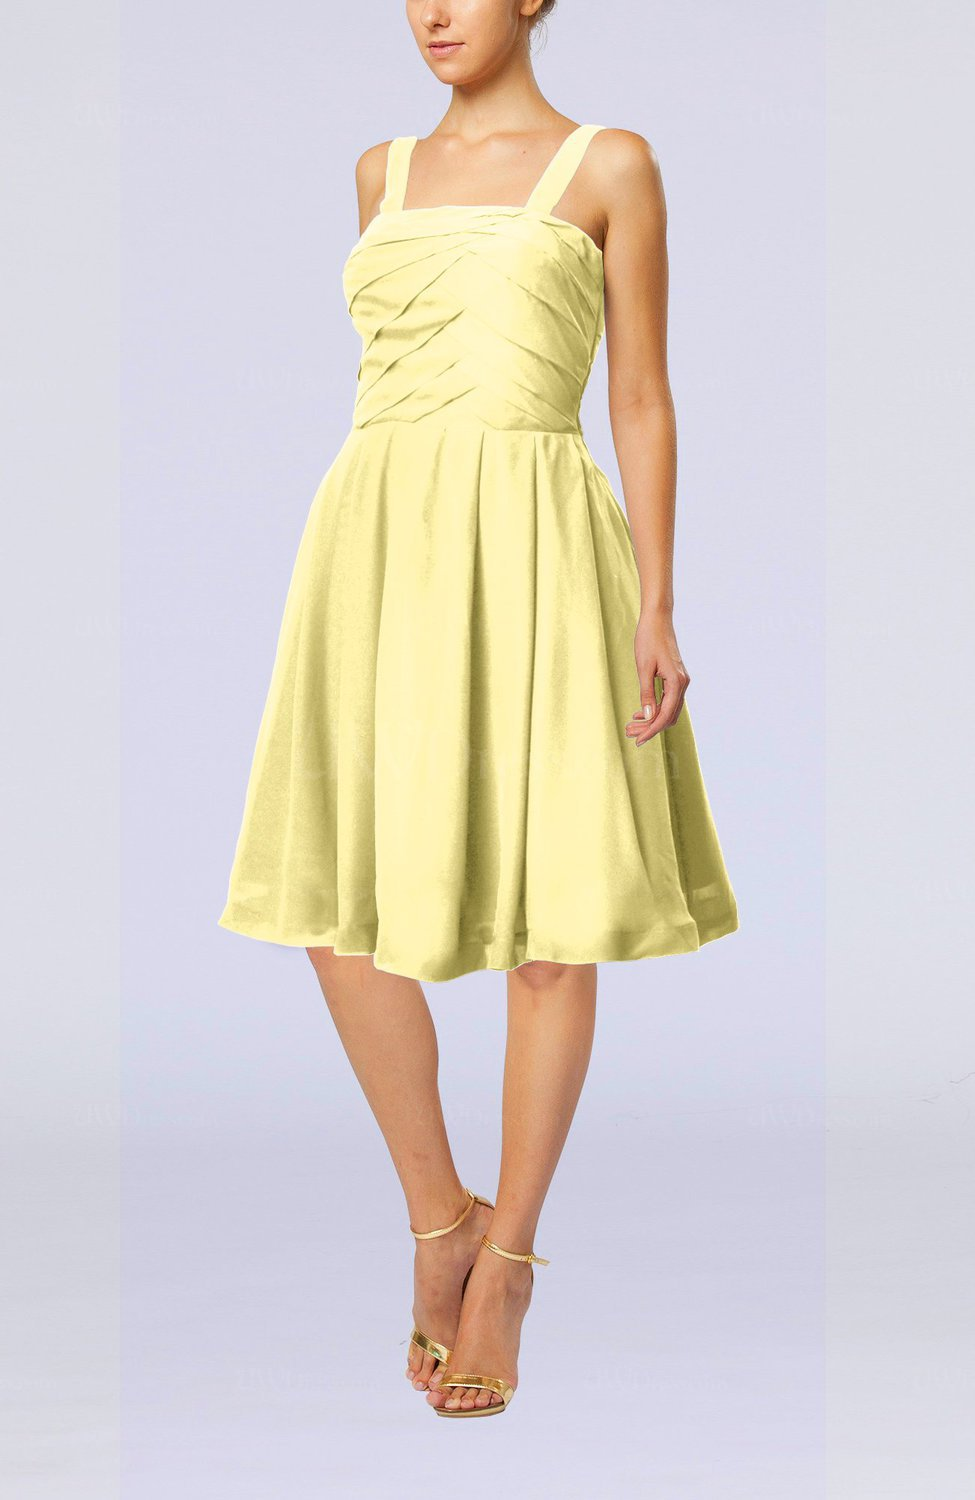 Pastel Yellow Modest A-line Thick Straps Sleeveless Knee Length Little Black Dresses - UWDress.com